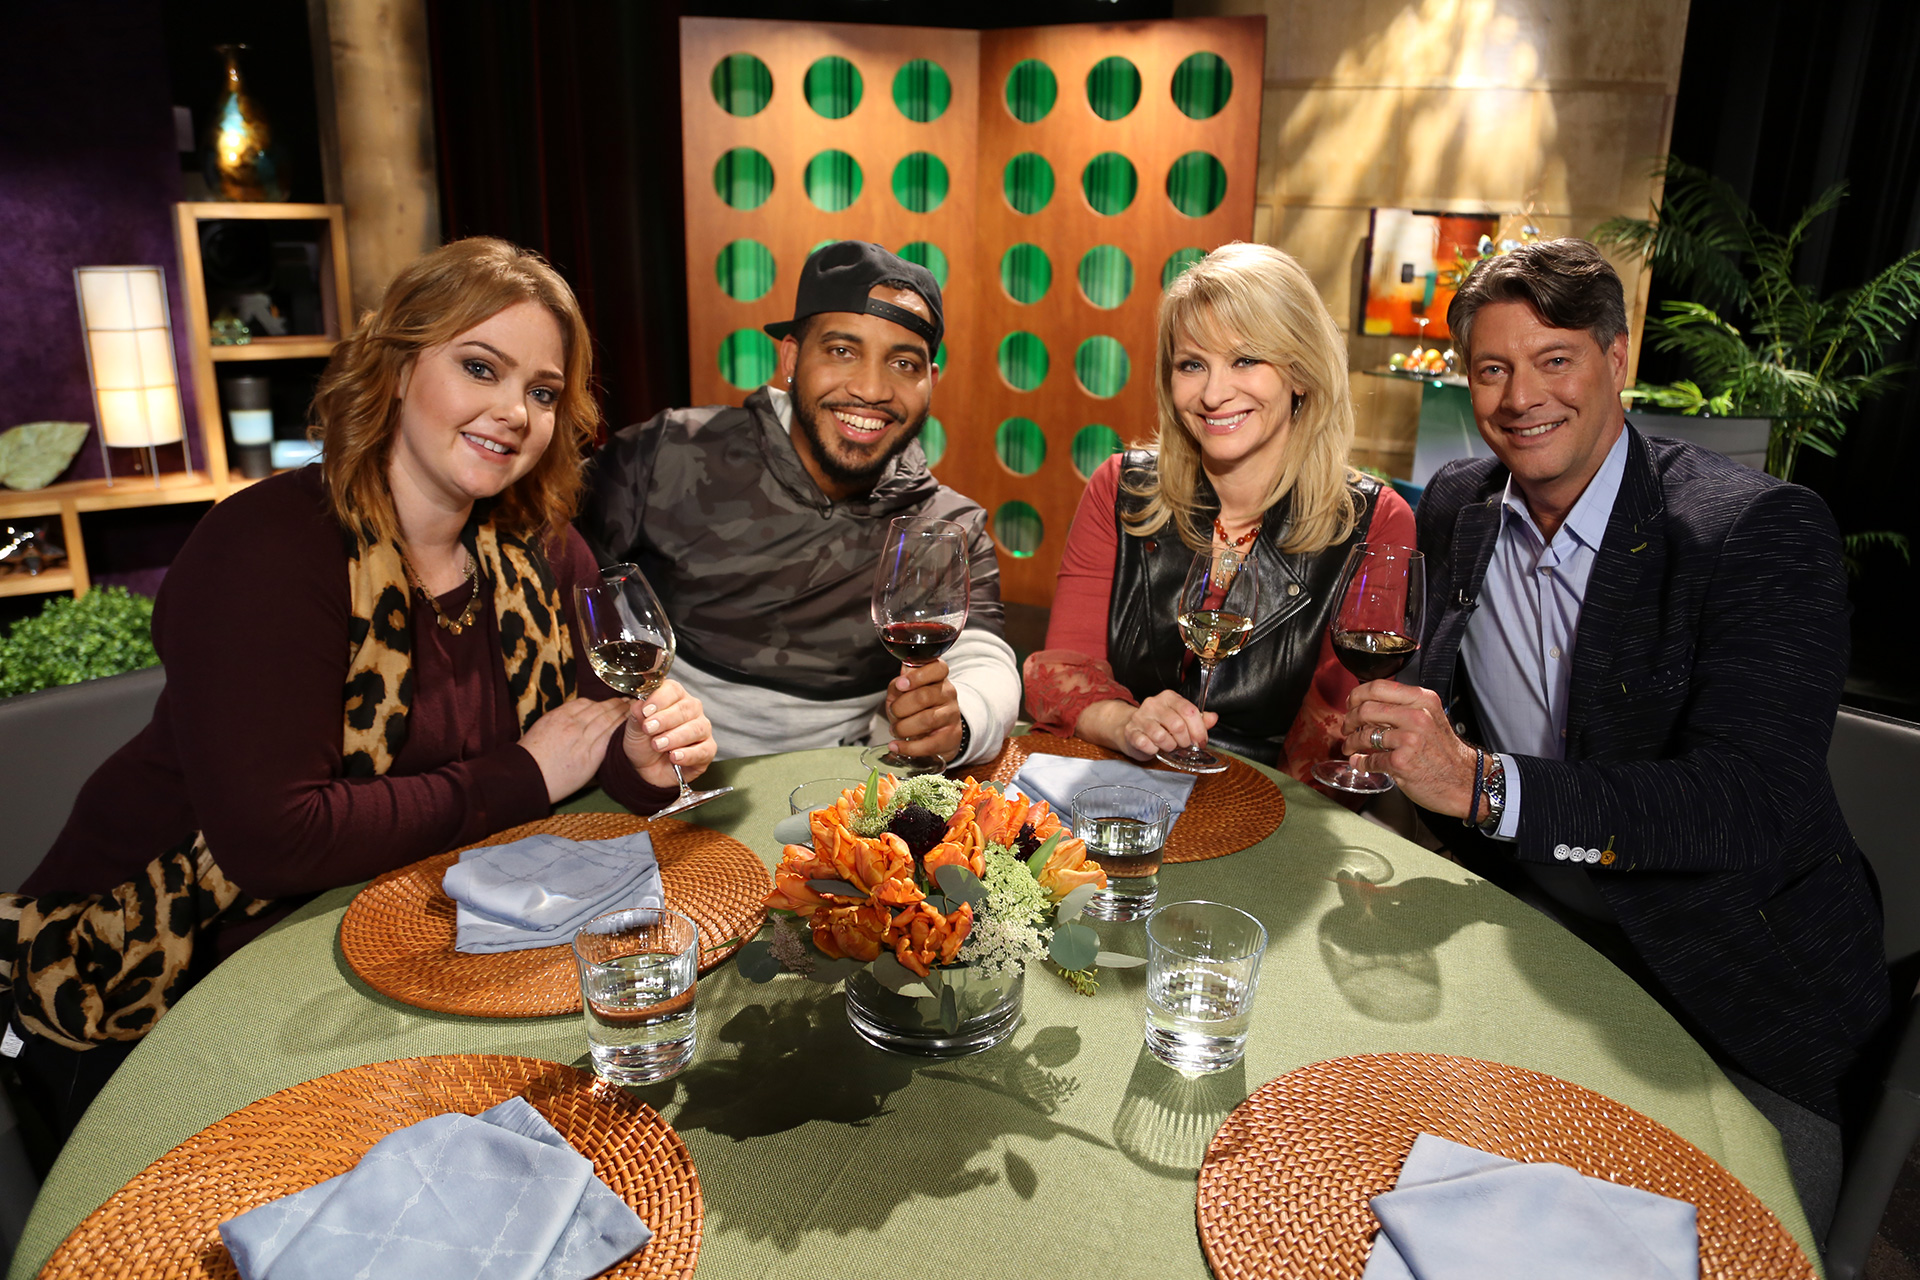 Host Leslie Sbrocco and guests on the set of season 13 episode 3.